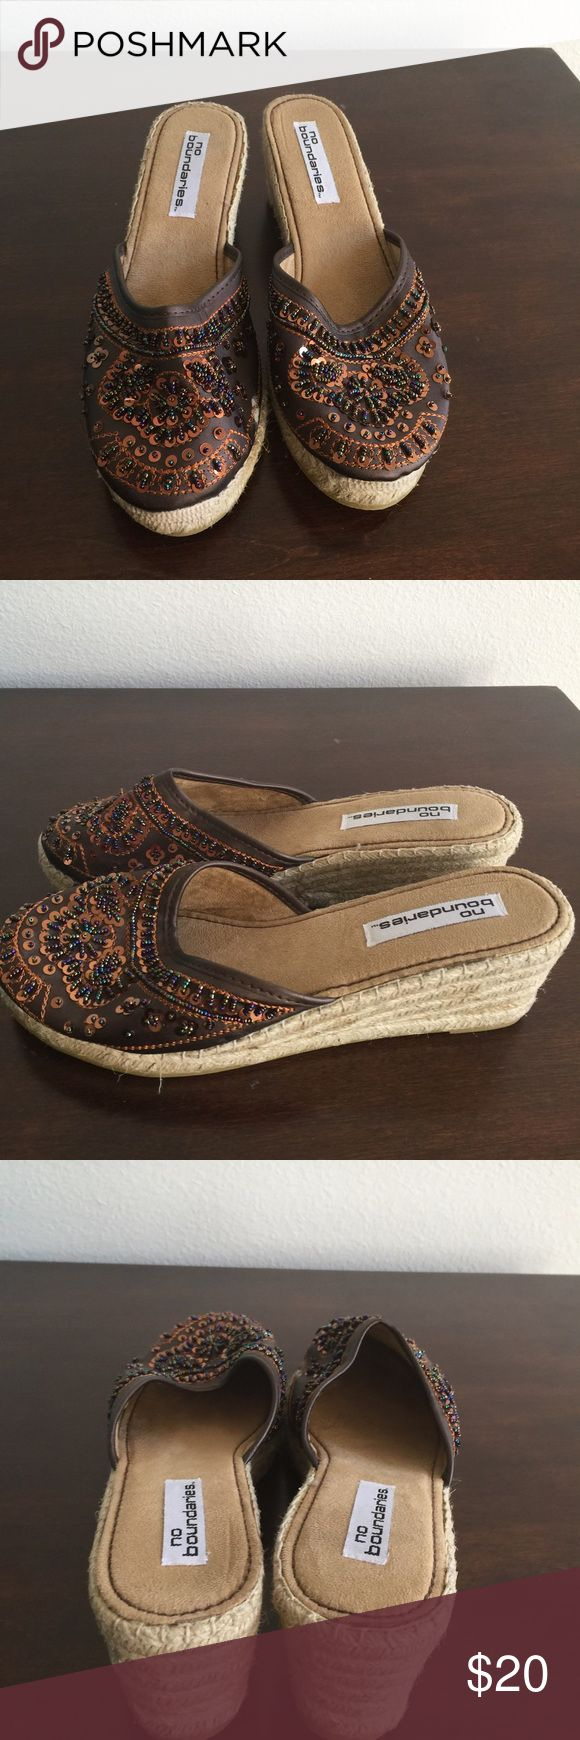 WEDGES SEQUINED NEW NEVER WORN WEDGE MULES Shoes Mules & Clogs